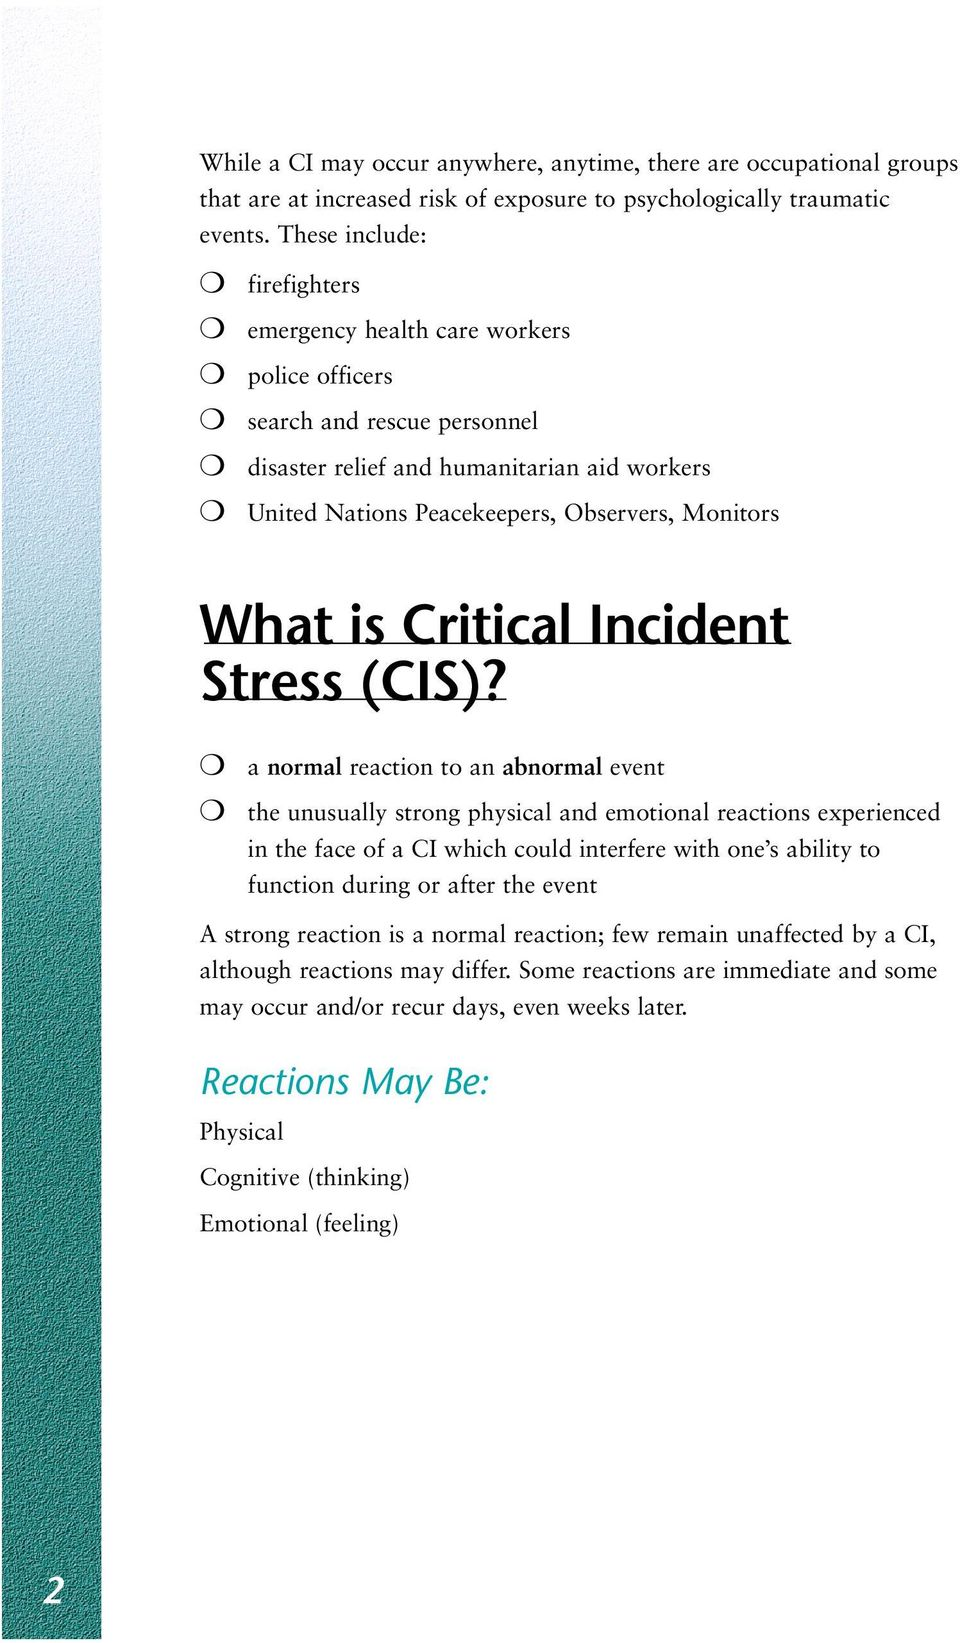 What is Critical Incident Stress (CIS)?